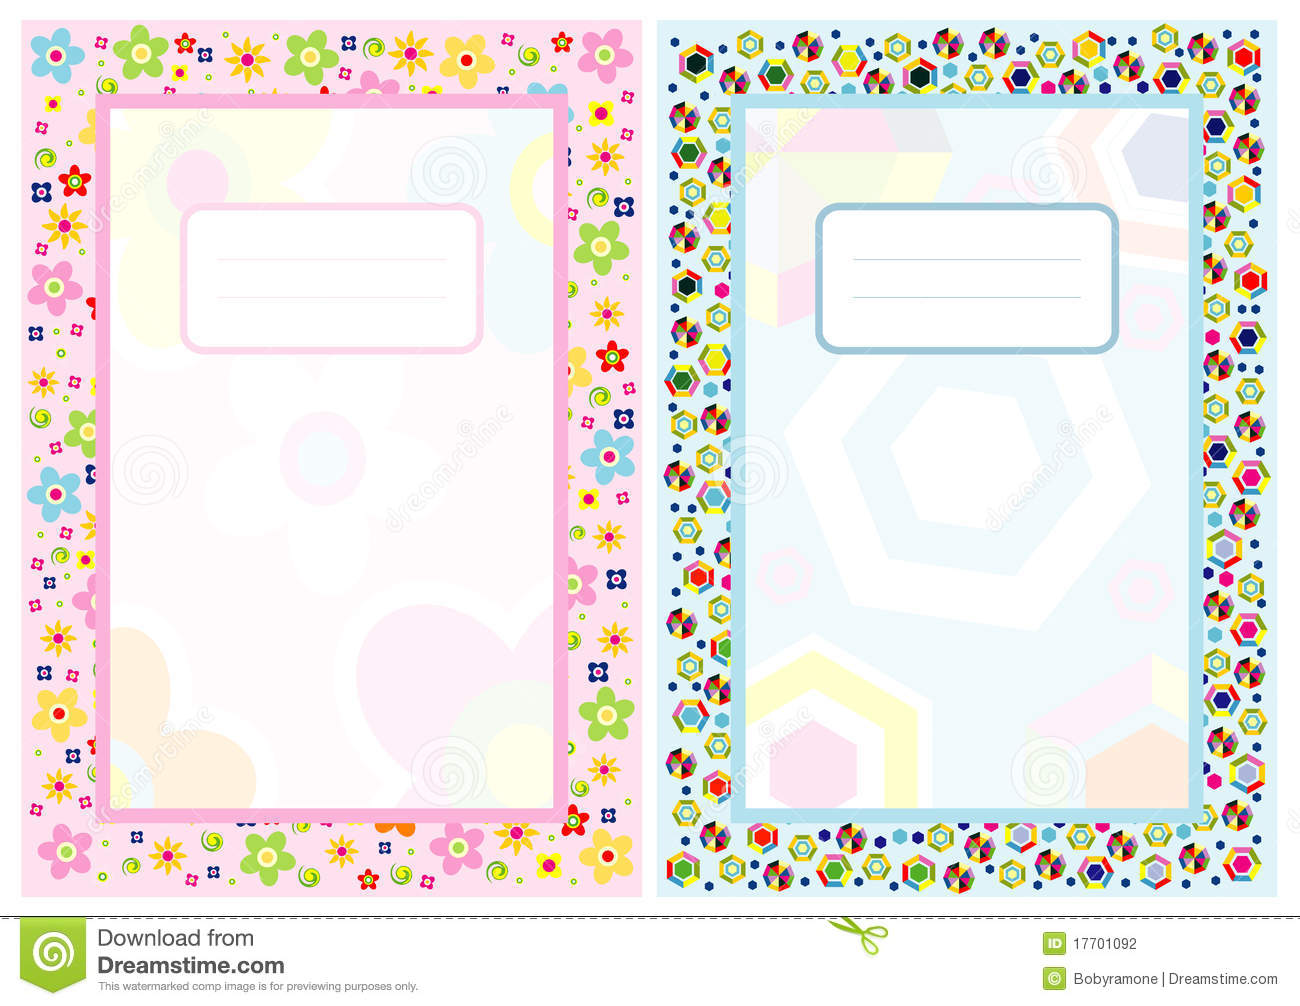 Clipart cover page image Notebook Cover Page Stock Photography - Image: 17701092 image